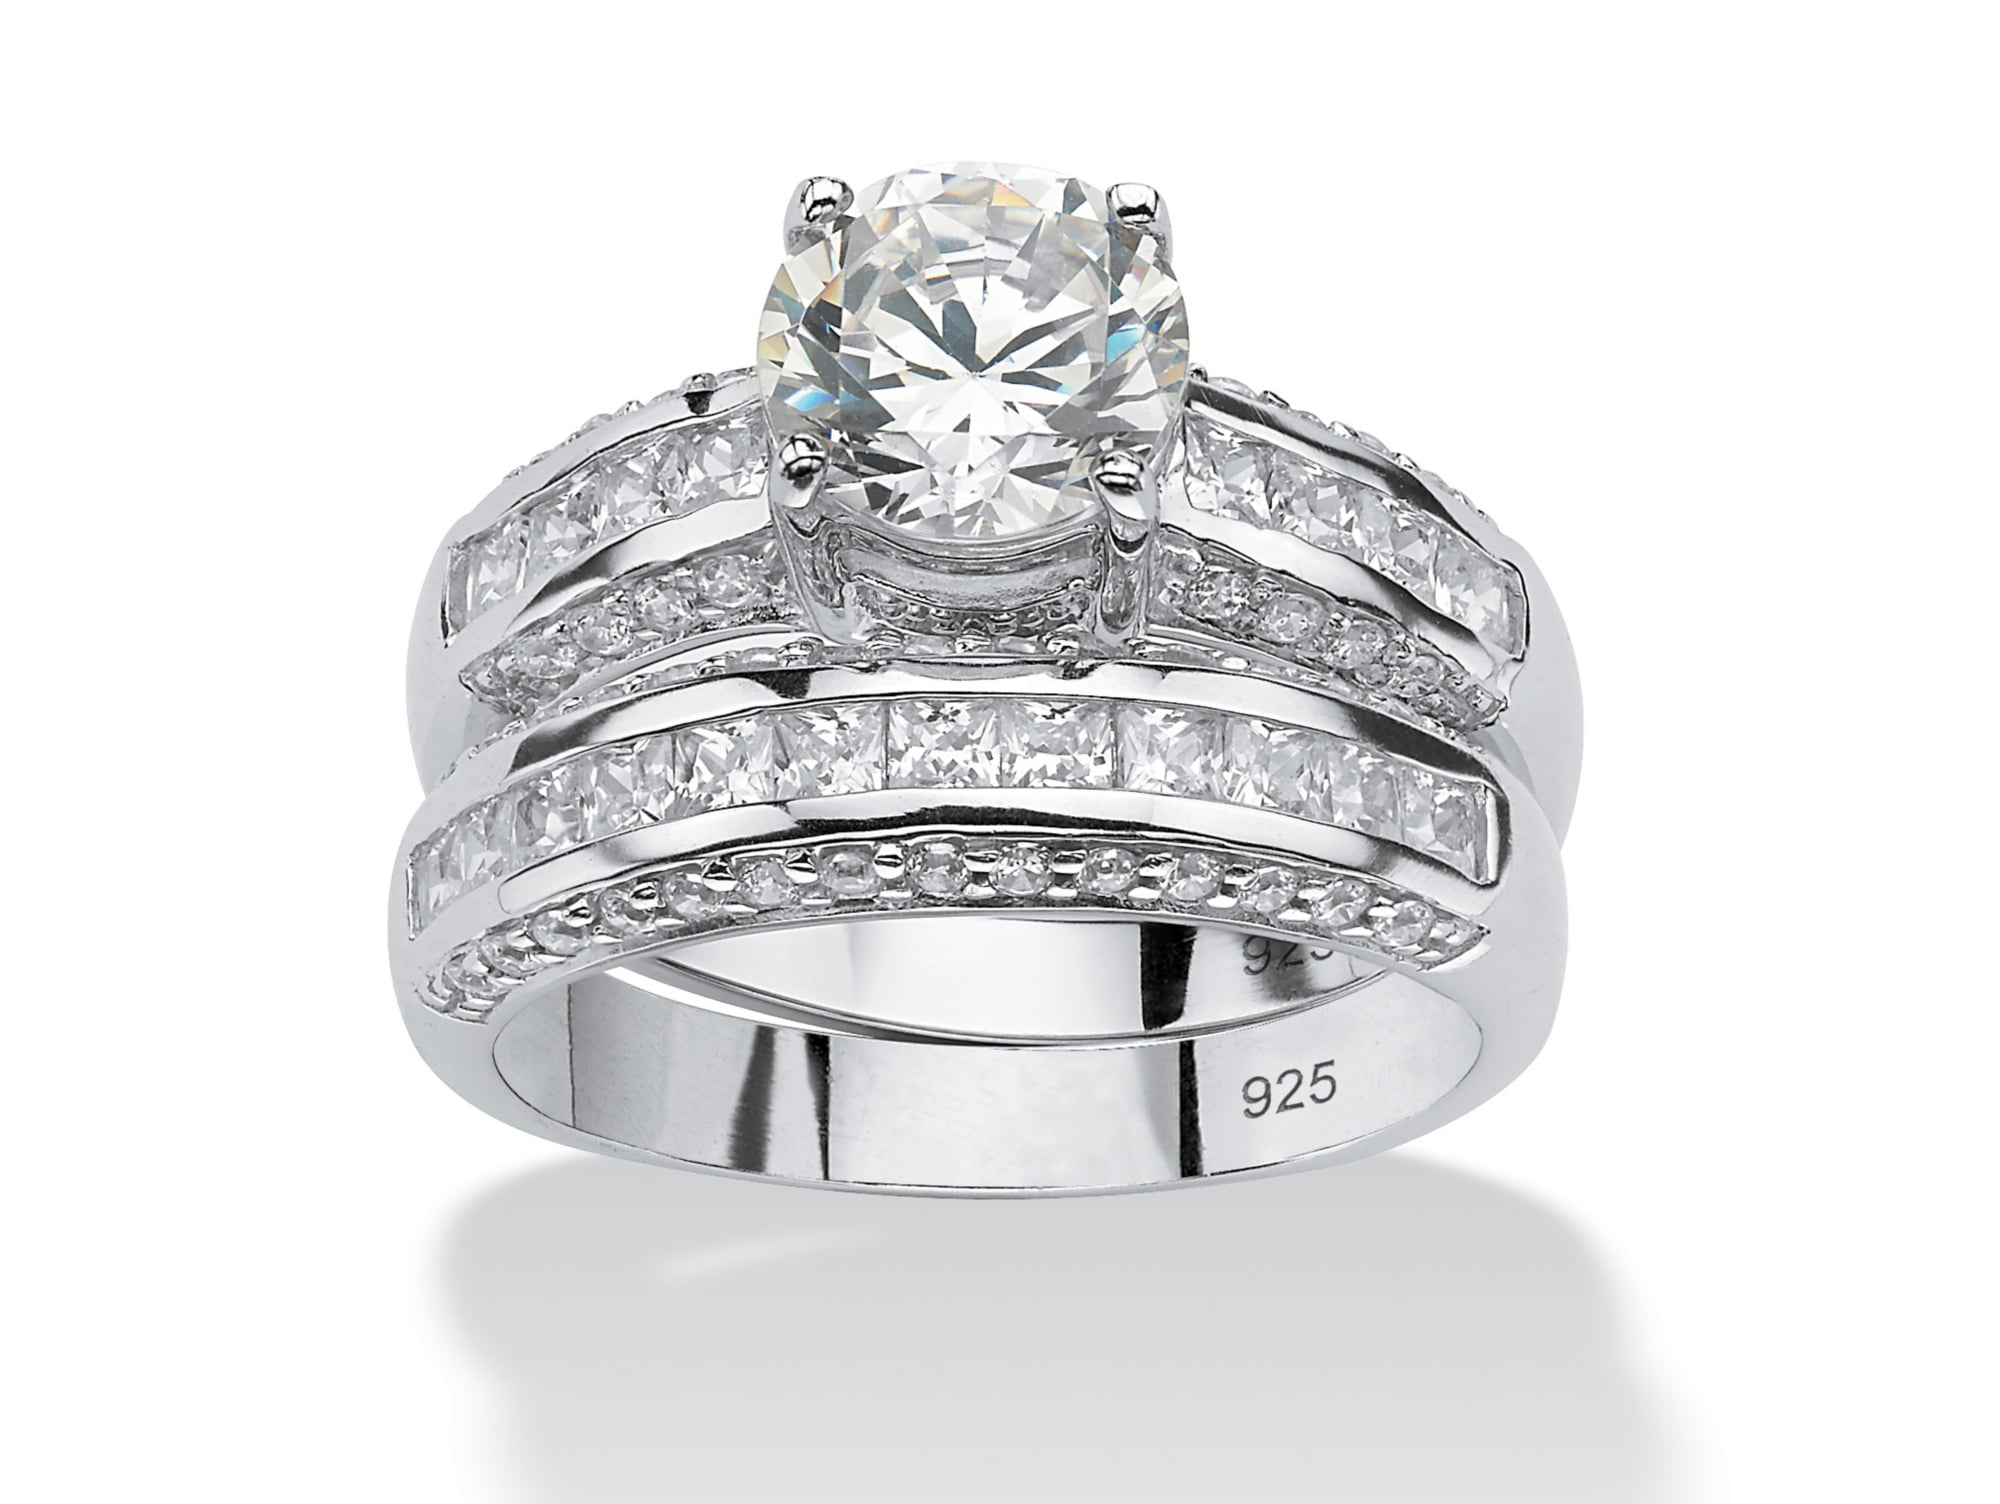 2 Piece 3.20 TCW Round Cubic Zirconia Bridal Ring Set in Platinum over Sterling Silver by PalmBeach Jewelry